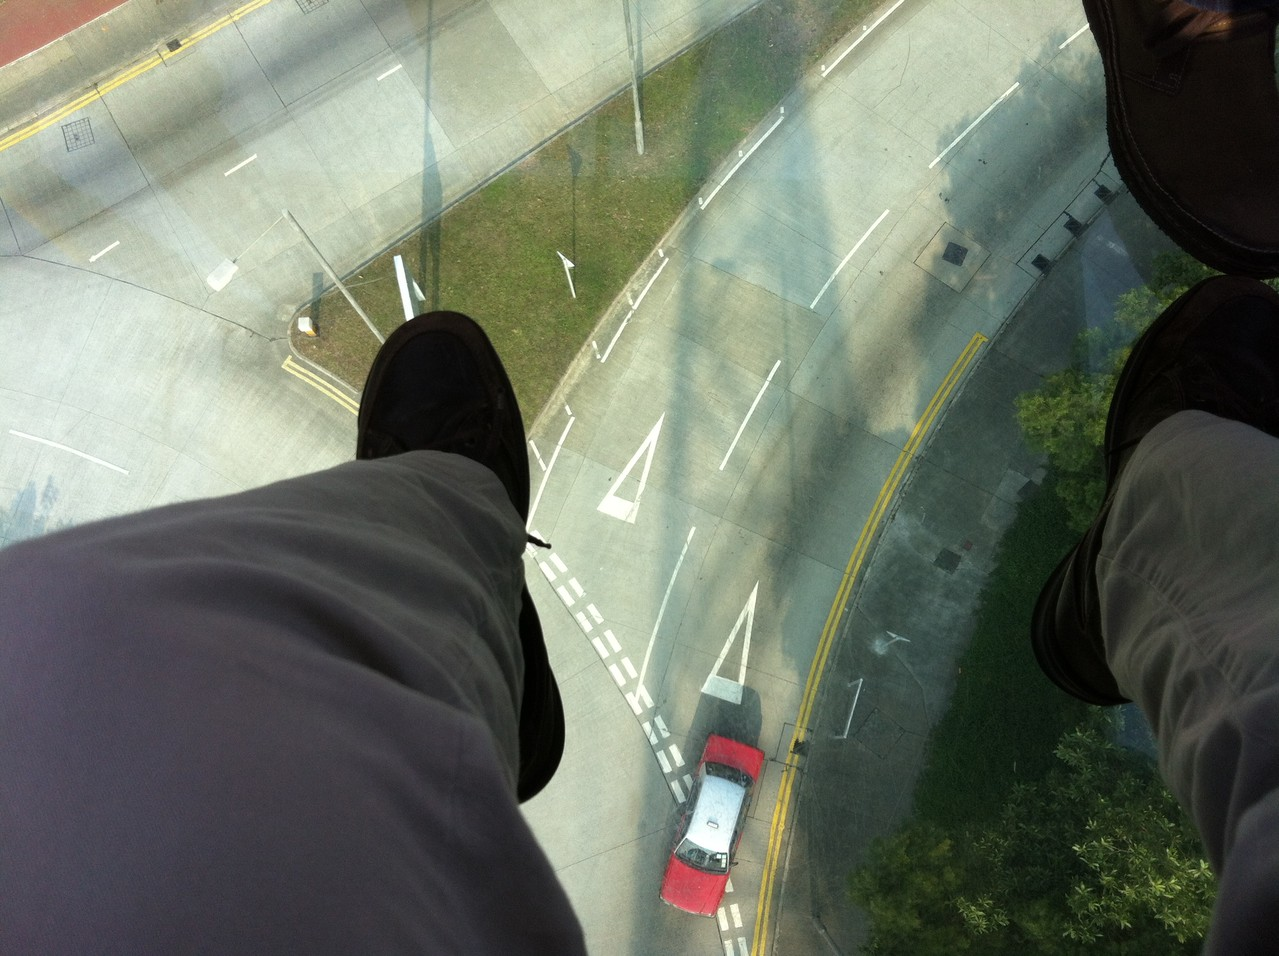 Eek! Glass floor scary! — at Ngong Ping Cable Car.